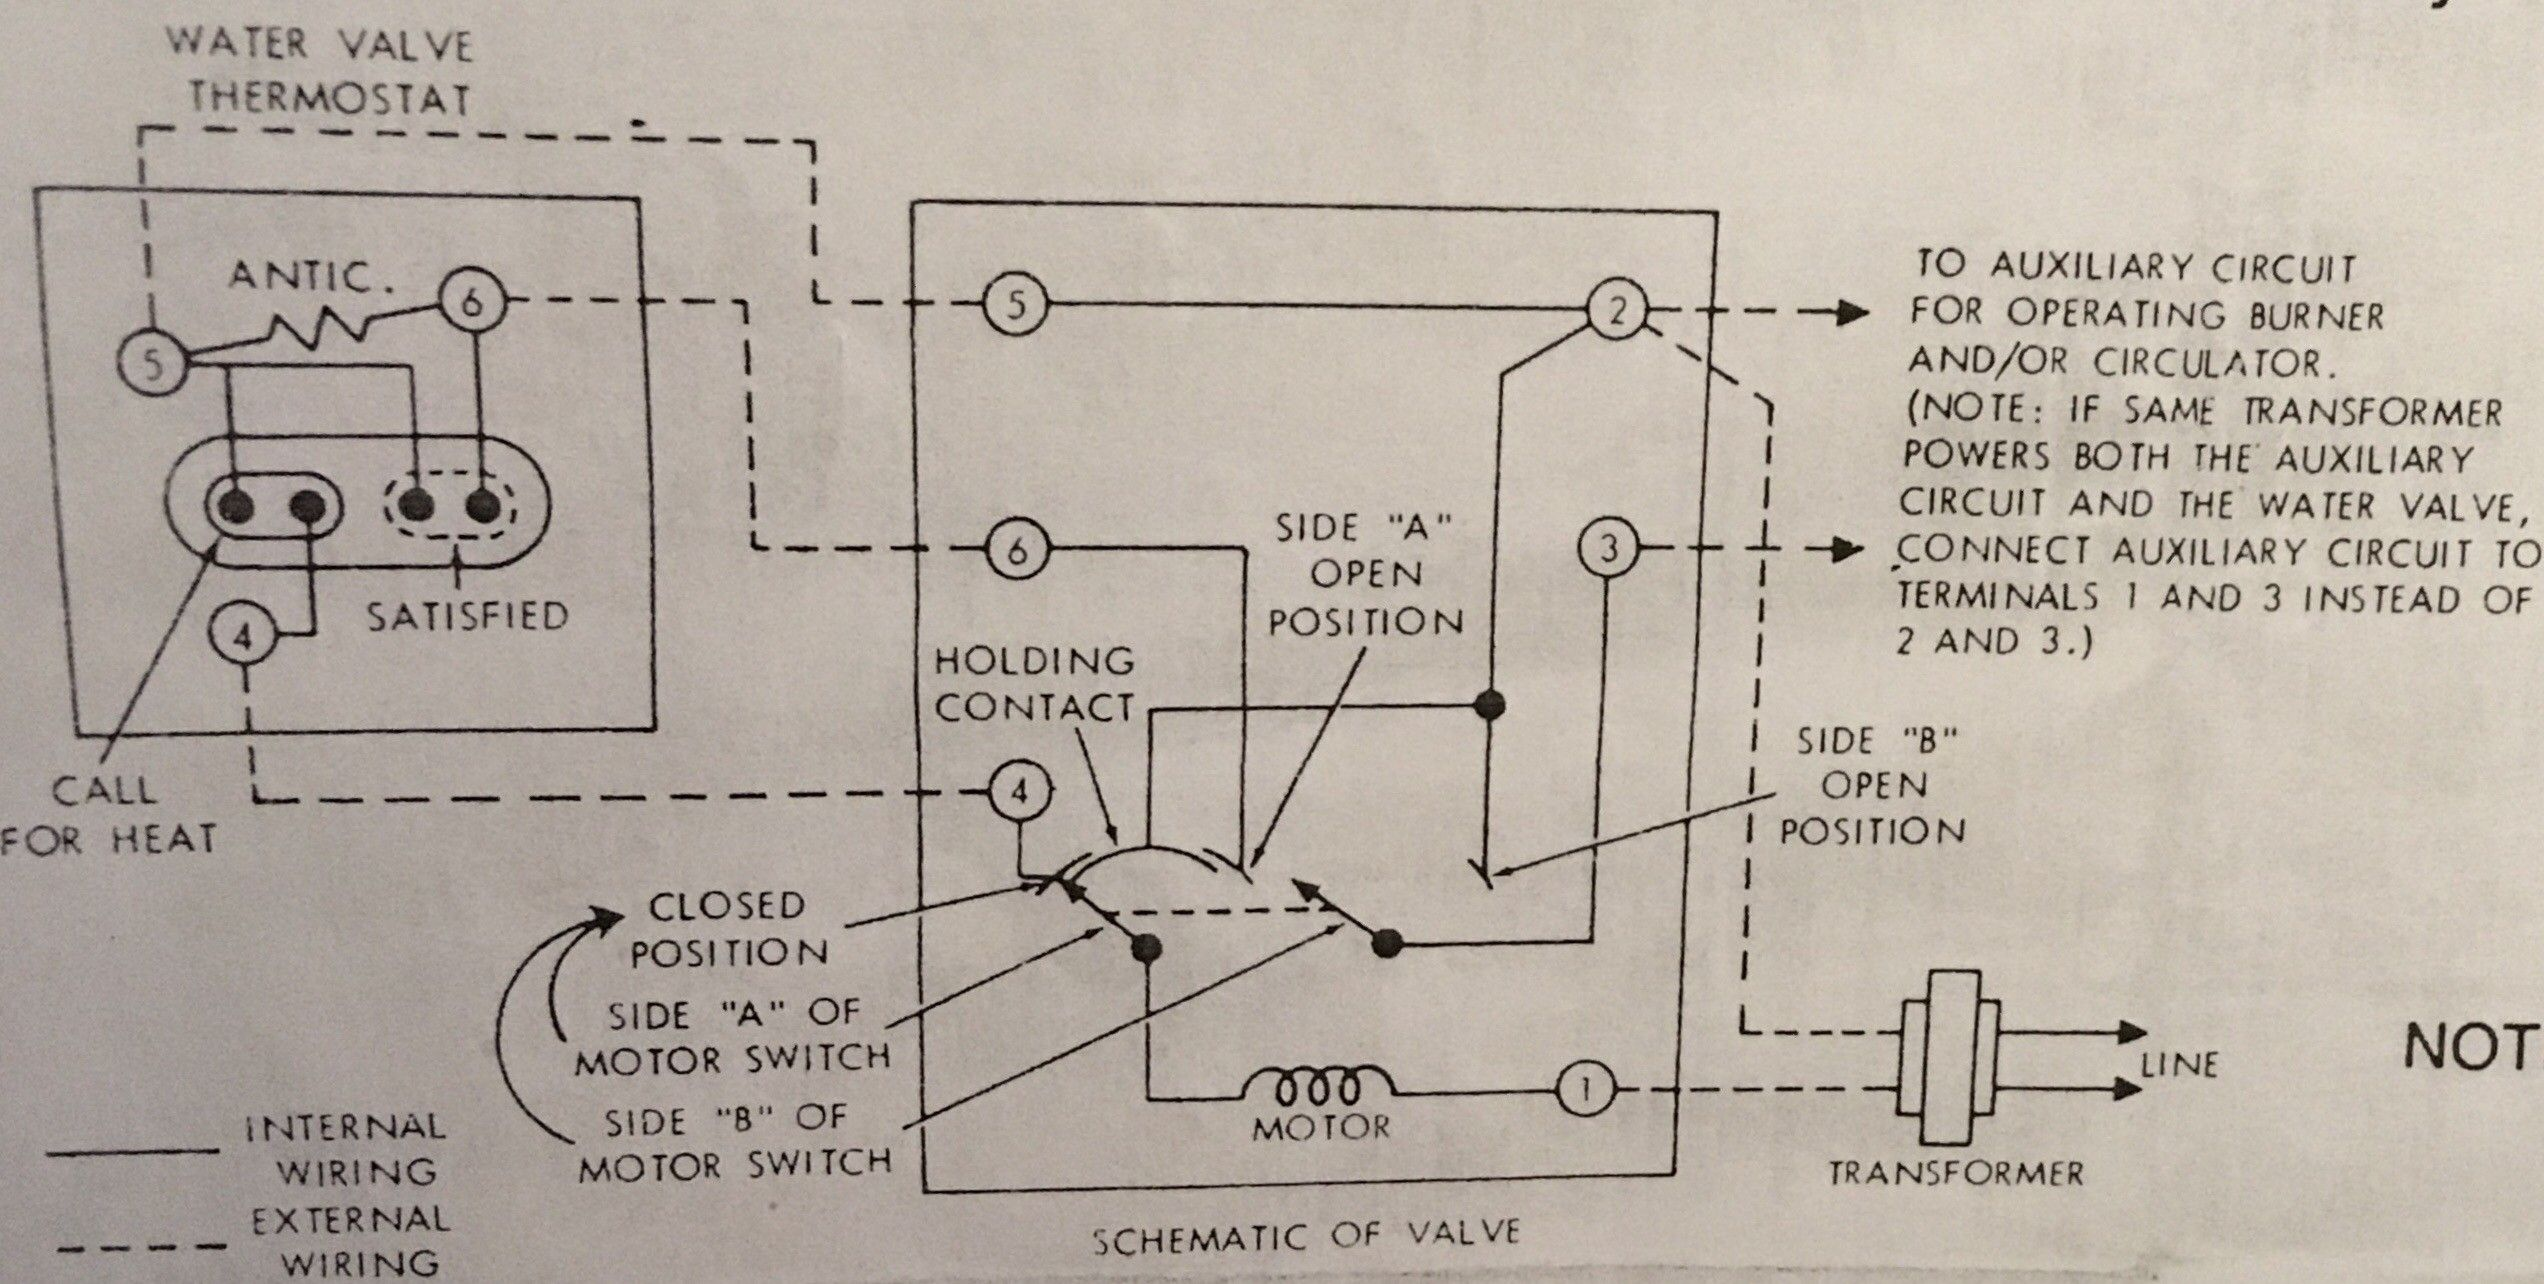 New Wiring Diagram For A System Boiler